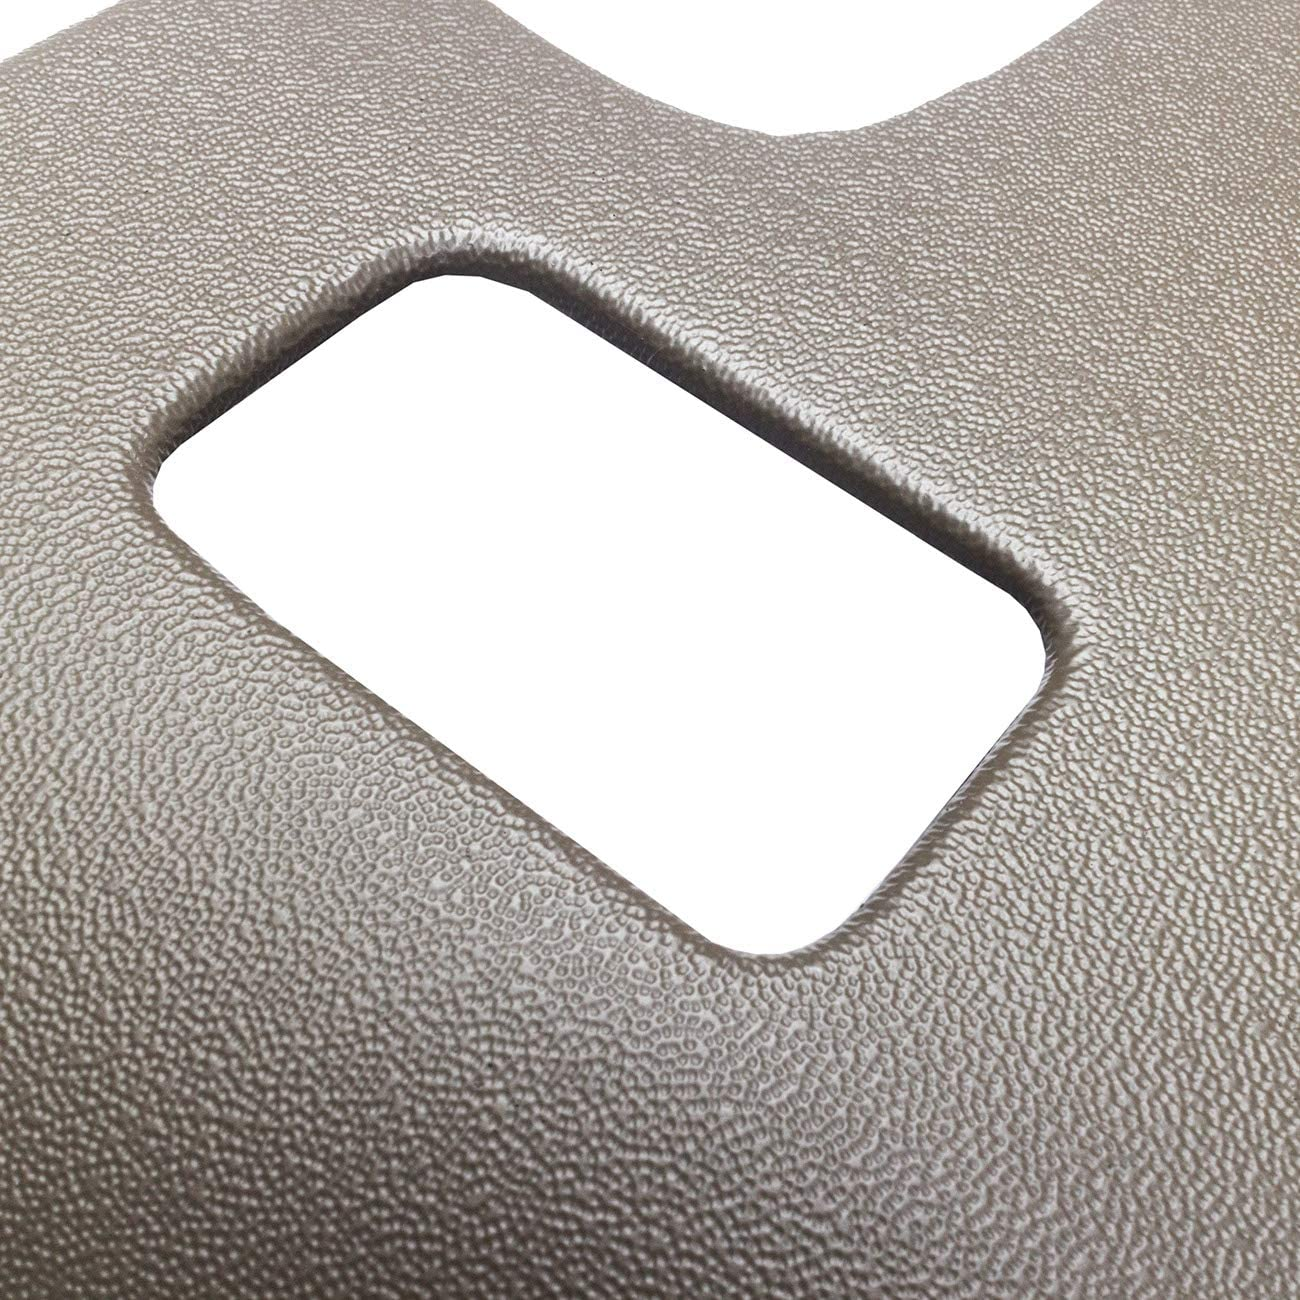 KARPAL Molded Dash Cover With Speaker Holes Compatible With 2007-2014 GM SUVs Avalanche Suburban Tahoe GMC Sierra Yukon Khaki